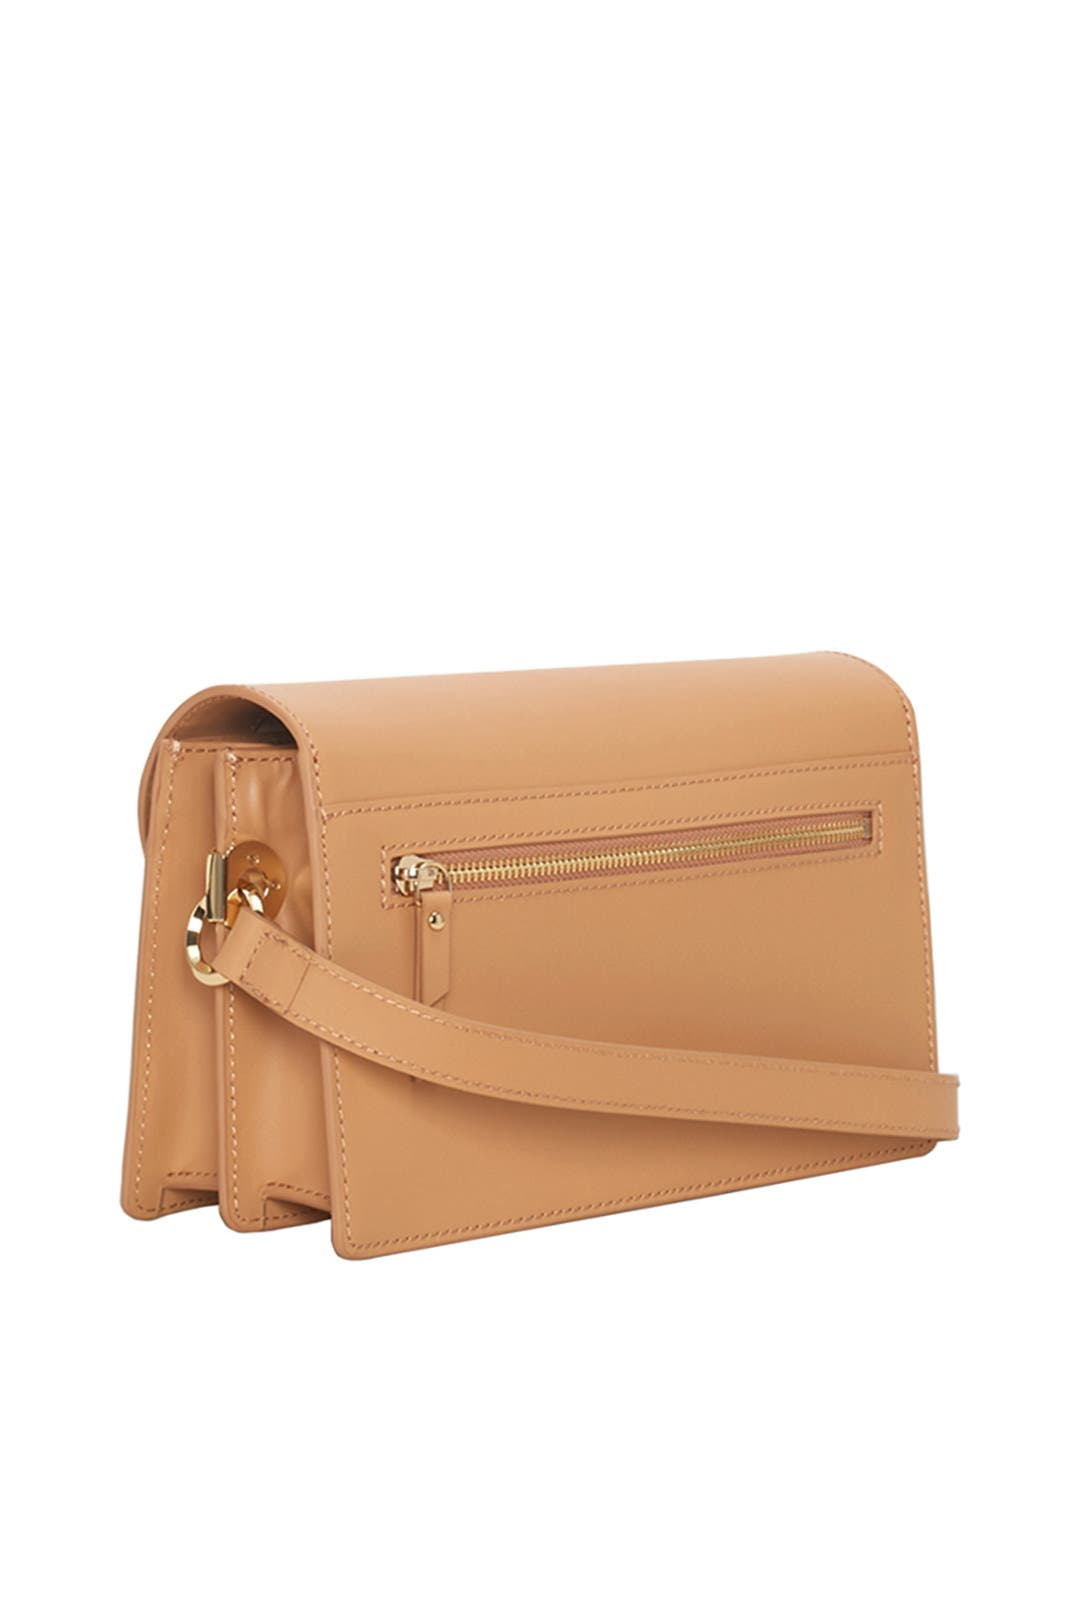 3b913050d443b Tan Large Ring Clutch by Liebeskind for  40